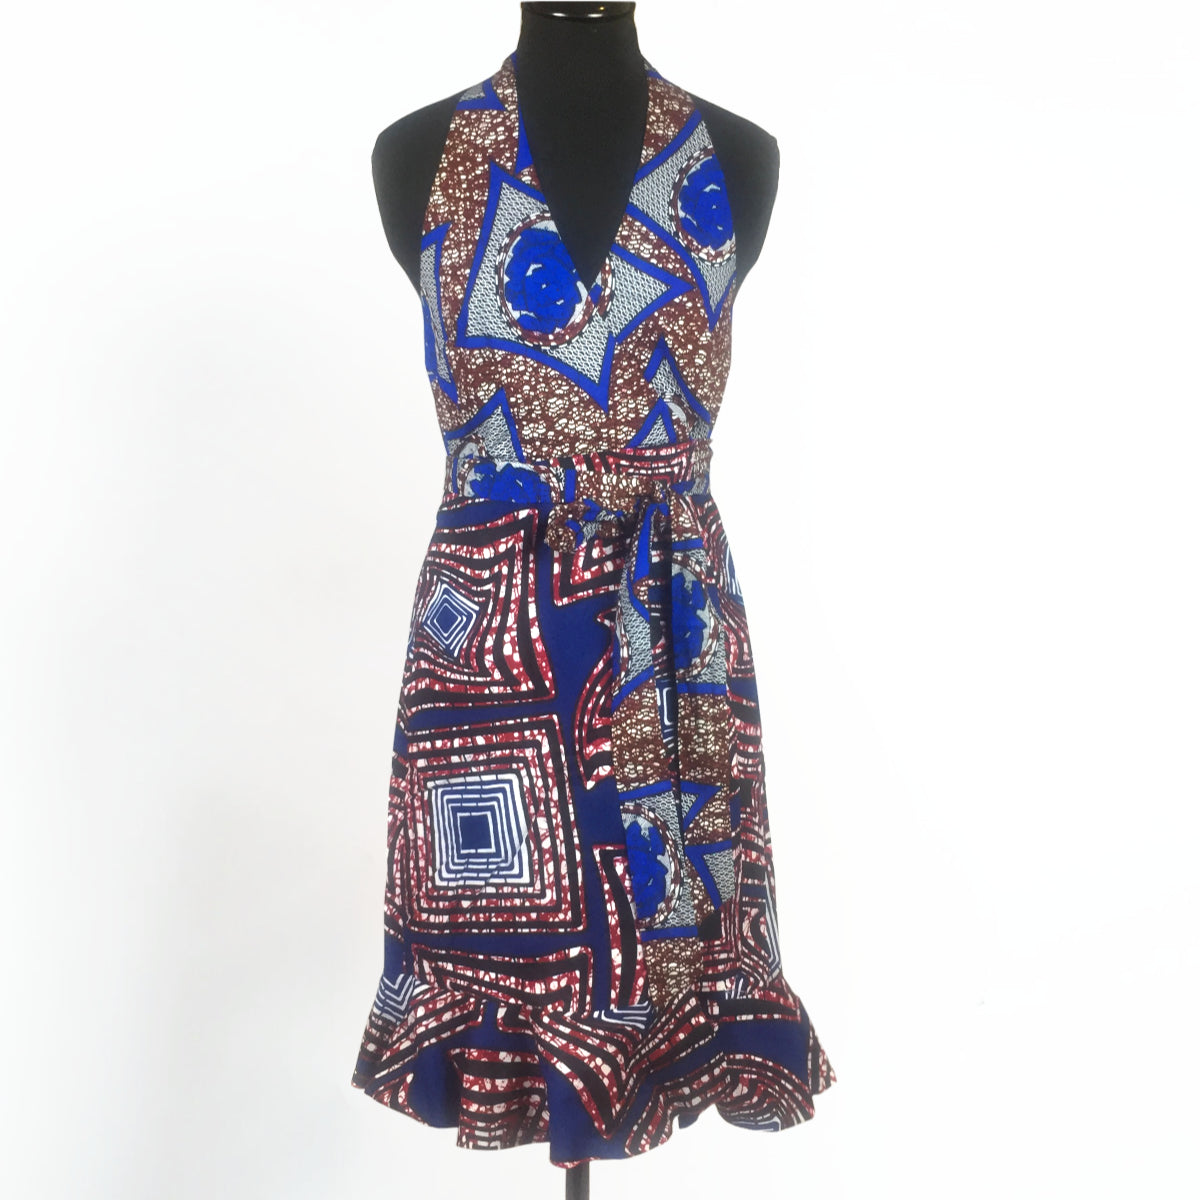 It's a wrap - African Print Mini